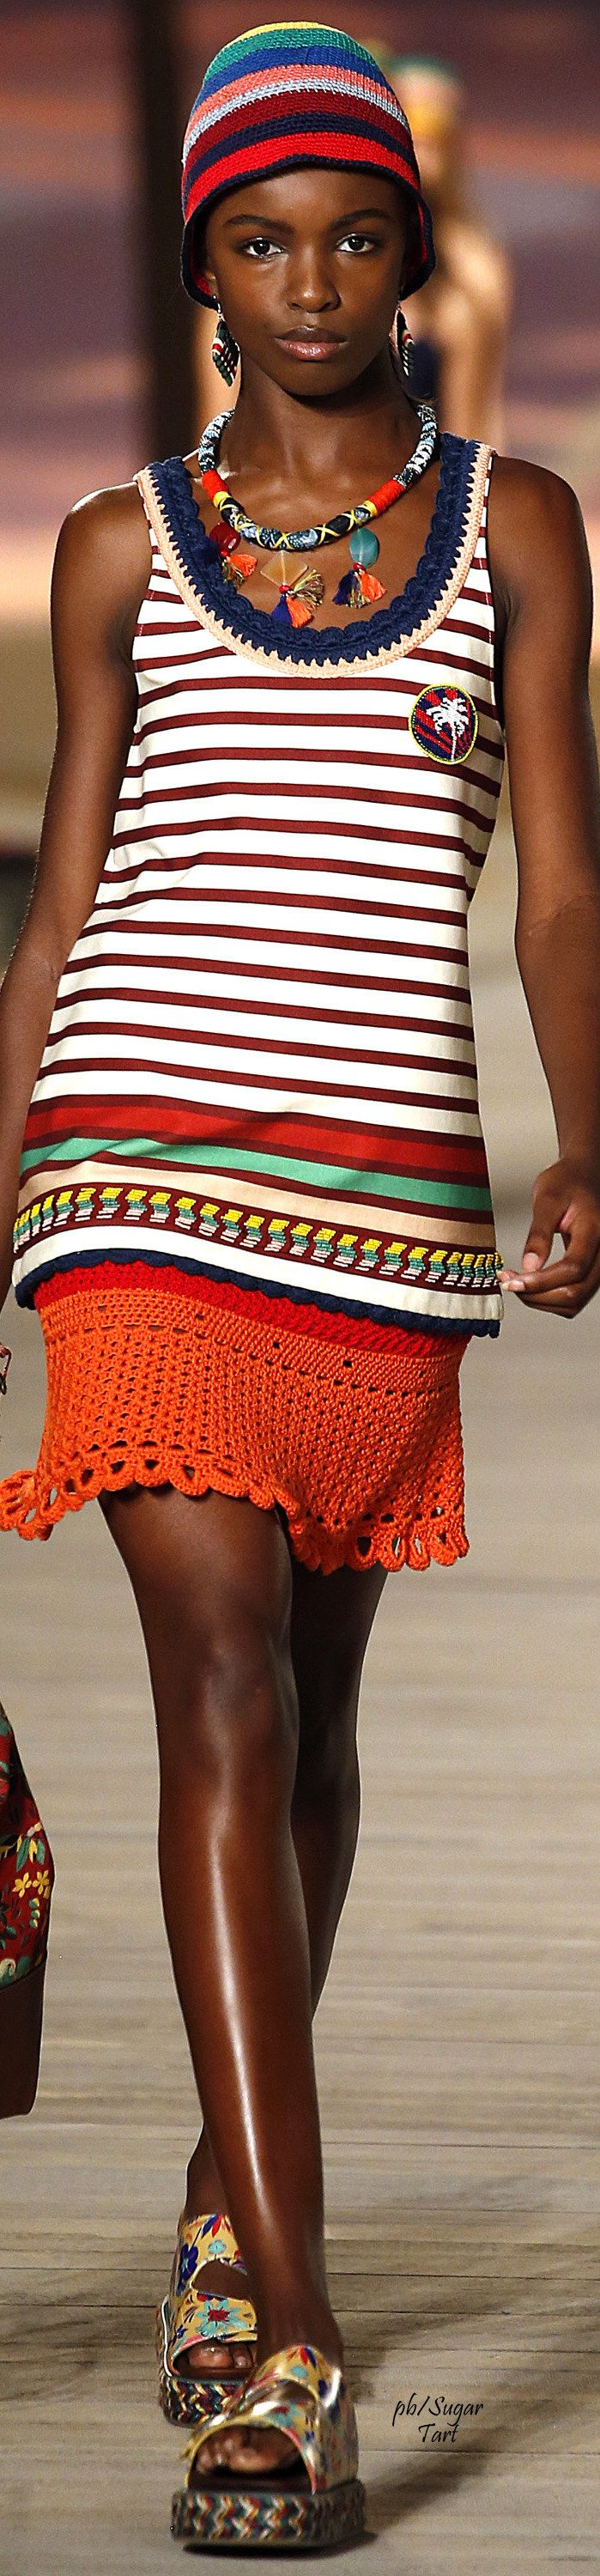 Tommy Hilfiger Spring 2016 RTW women fashion outfit clothing style apparel @roressclothes closet ideas